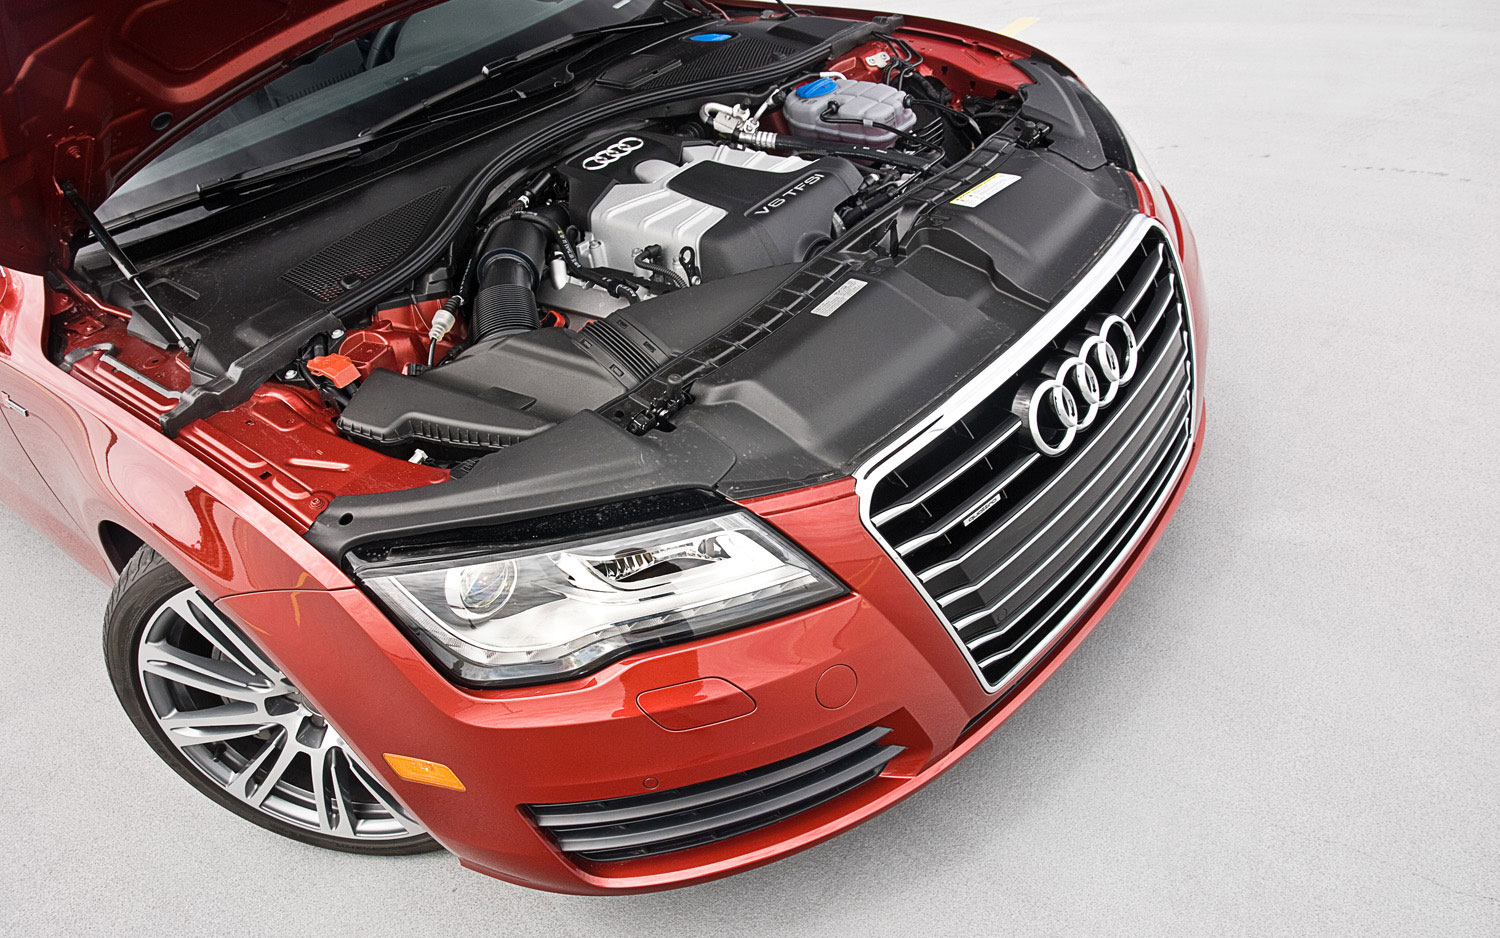 What Is The Difference Between Audi Premium And Prestige >> 2012 Audi A7 3.0T Prestige - Editors' Notebook - Automobile Magazine